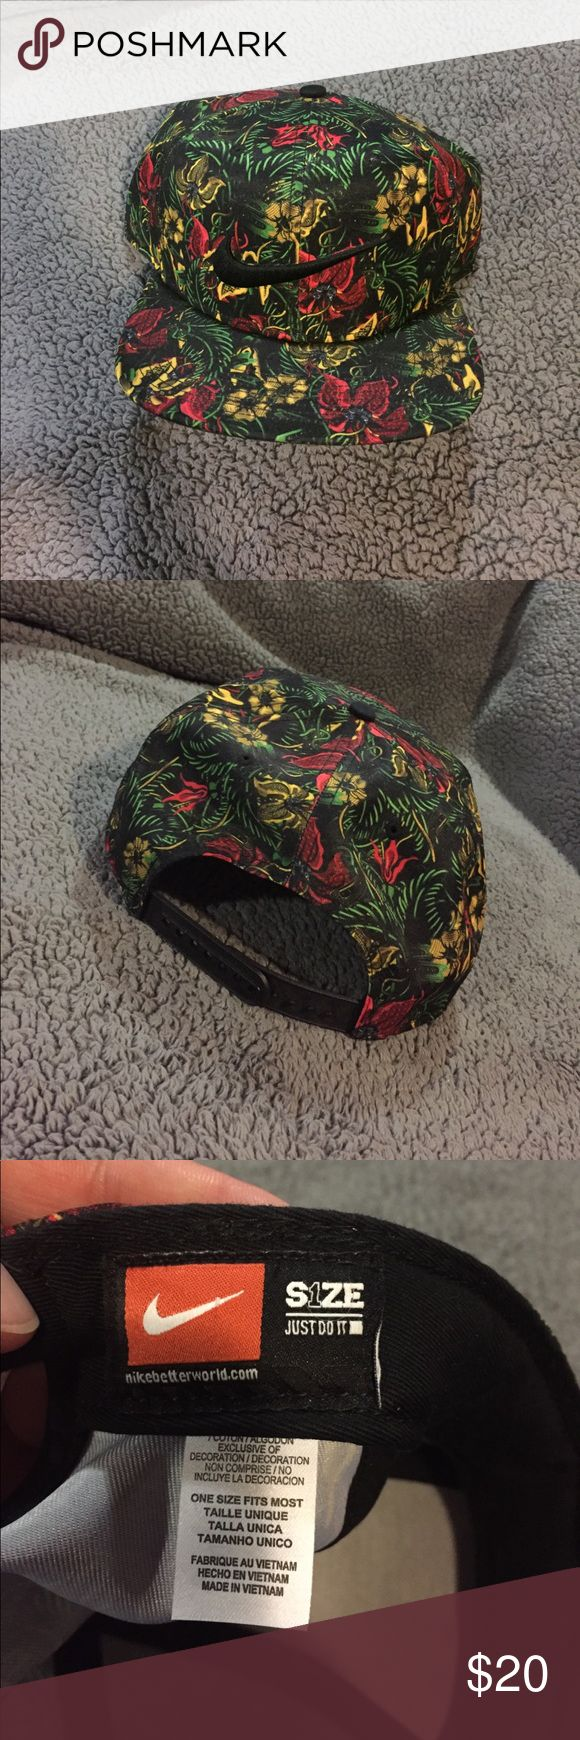 Nike Floral Flatbill SnapBack hat Kelly green, yellow and red floral on black background. One size fits most. Nike Accessories Hats